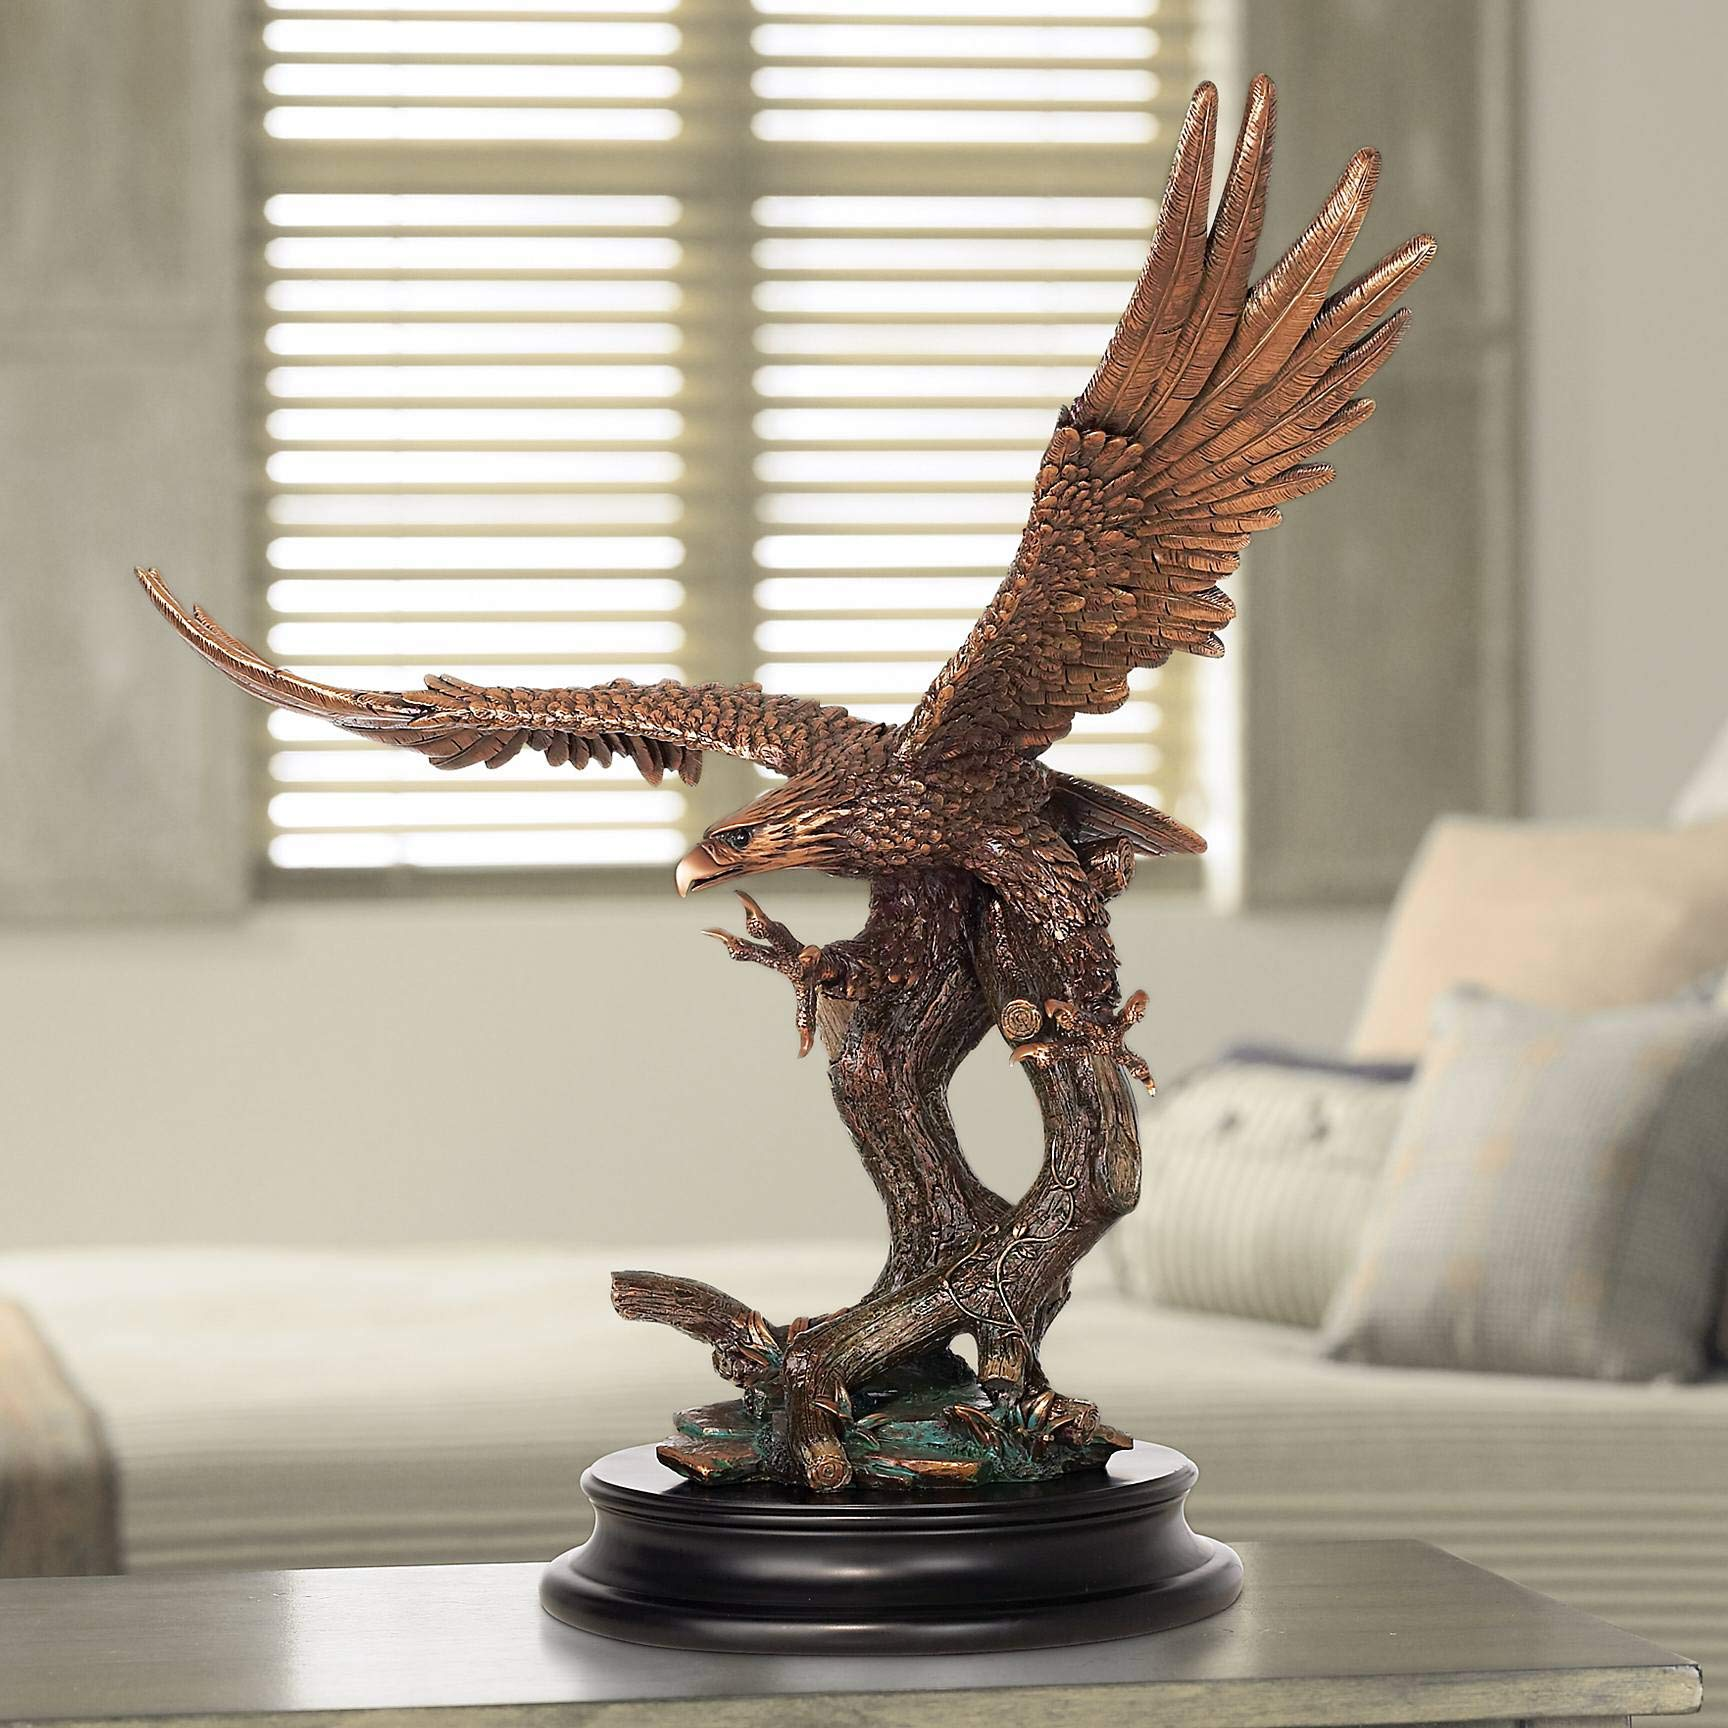 Kensington Hill Eagle Taking Flight 24 1/2'' High Large Bronze Sculpture